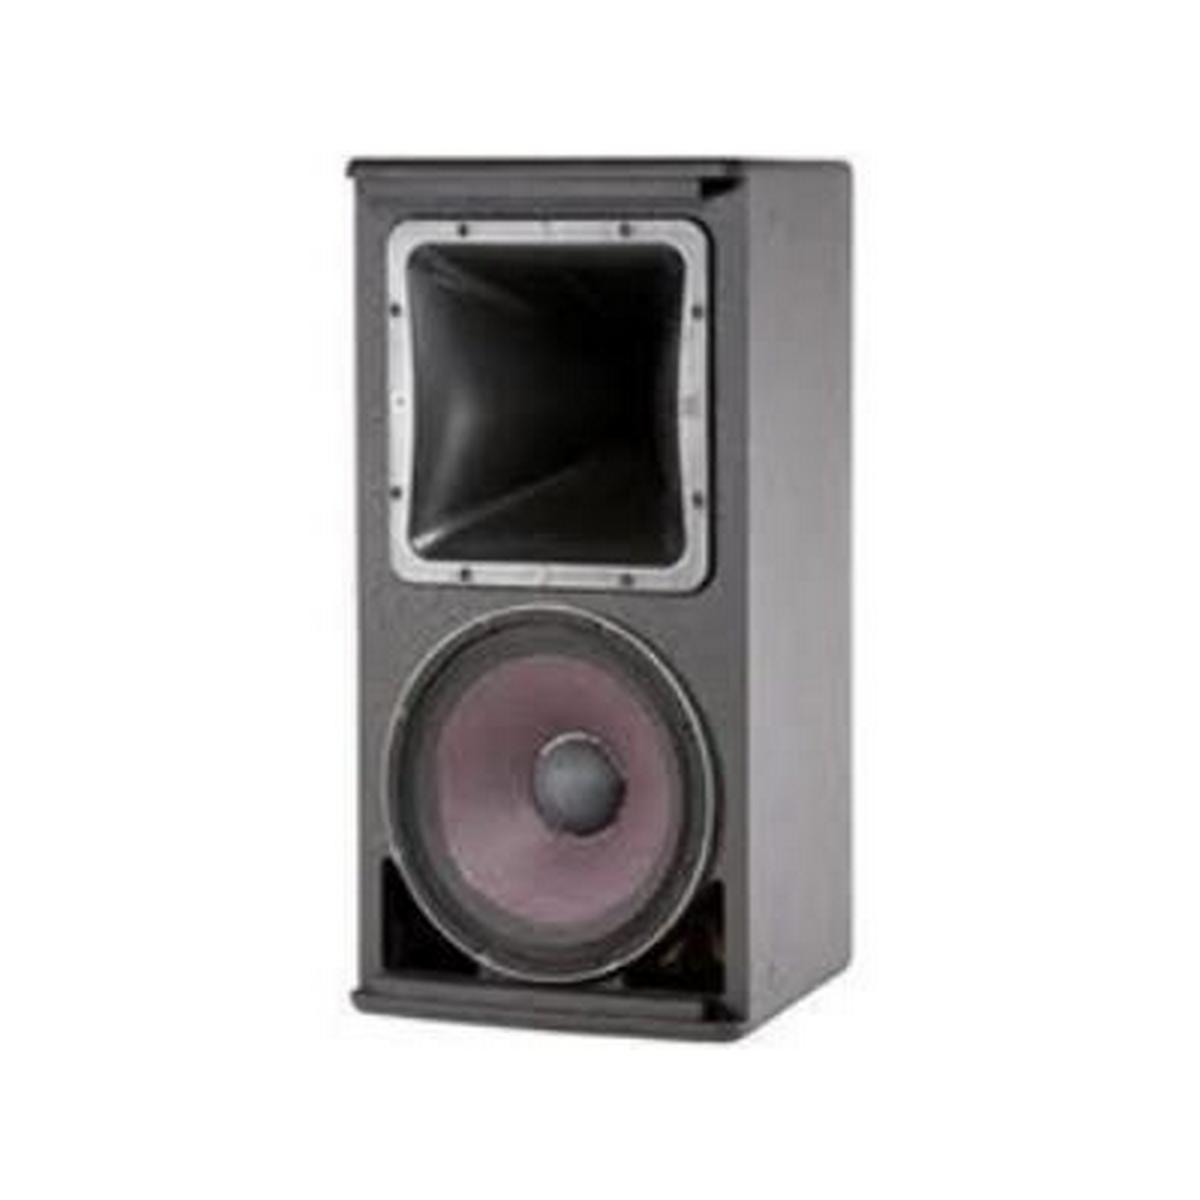 JBL AM521295 Two-way full range loudspeaker